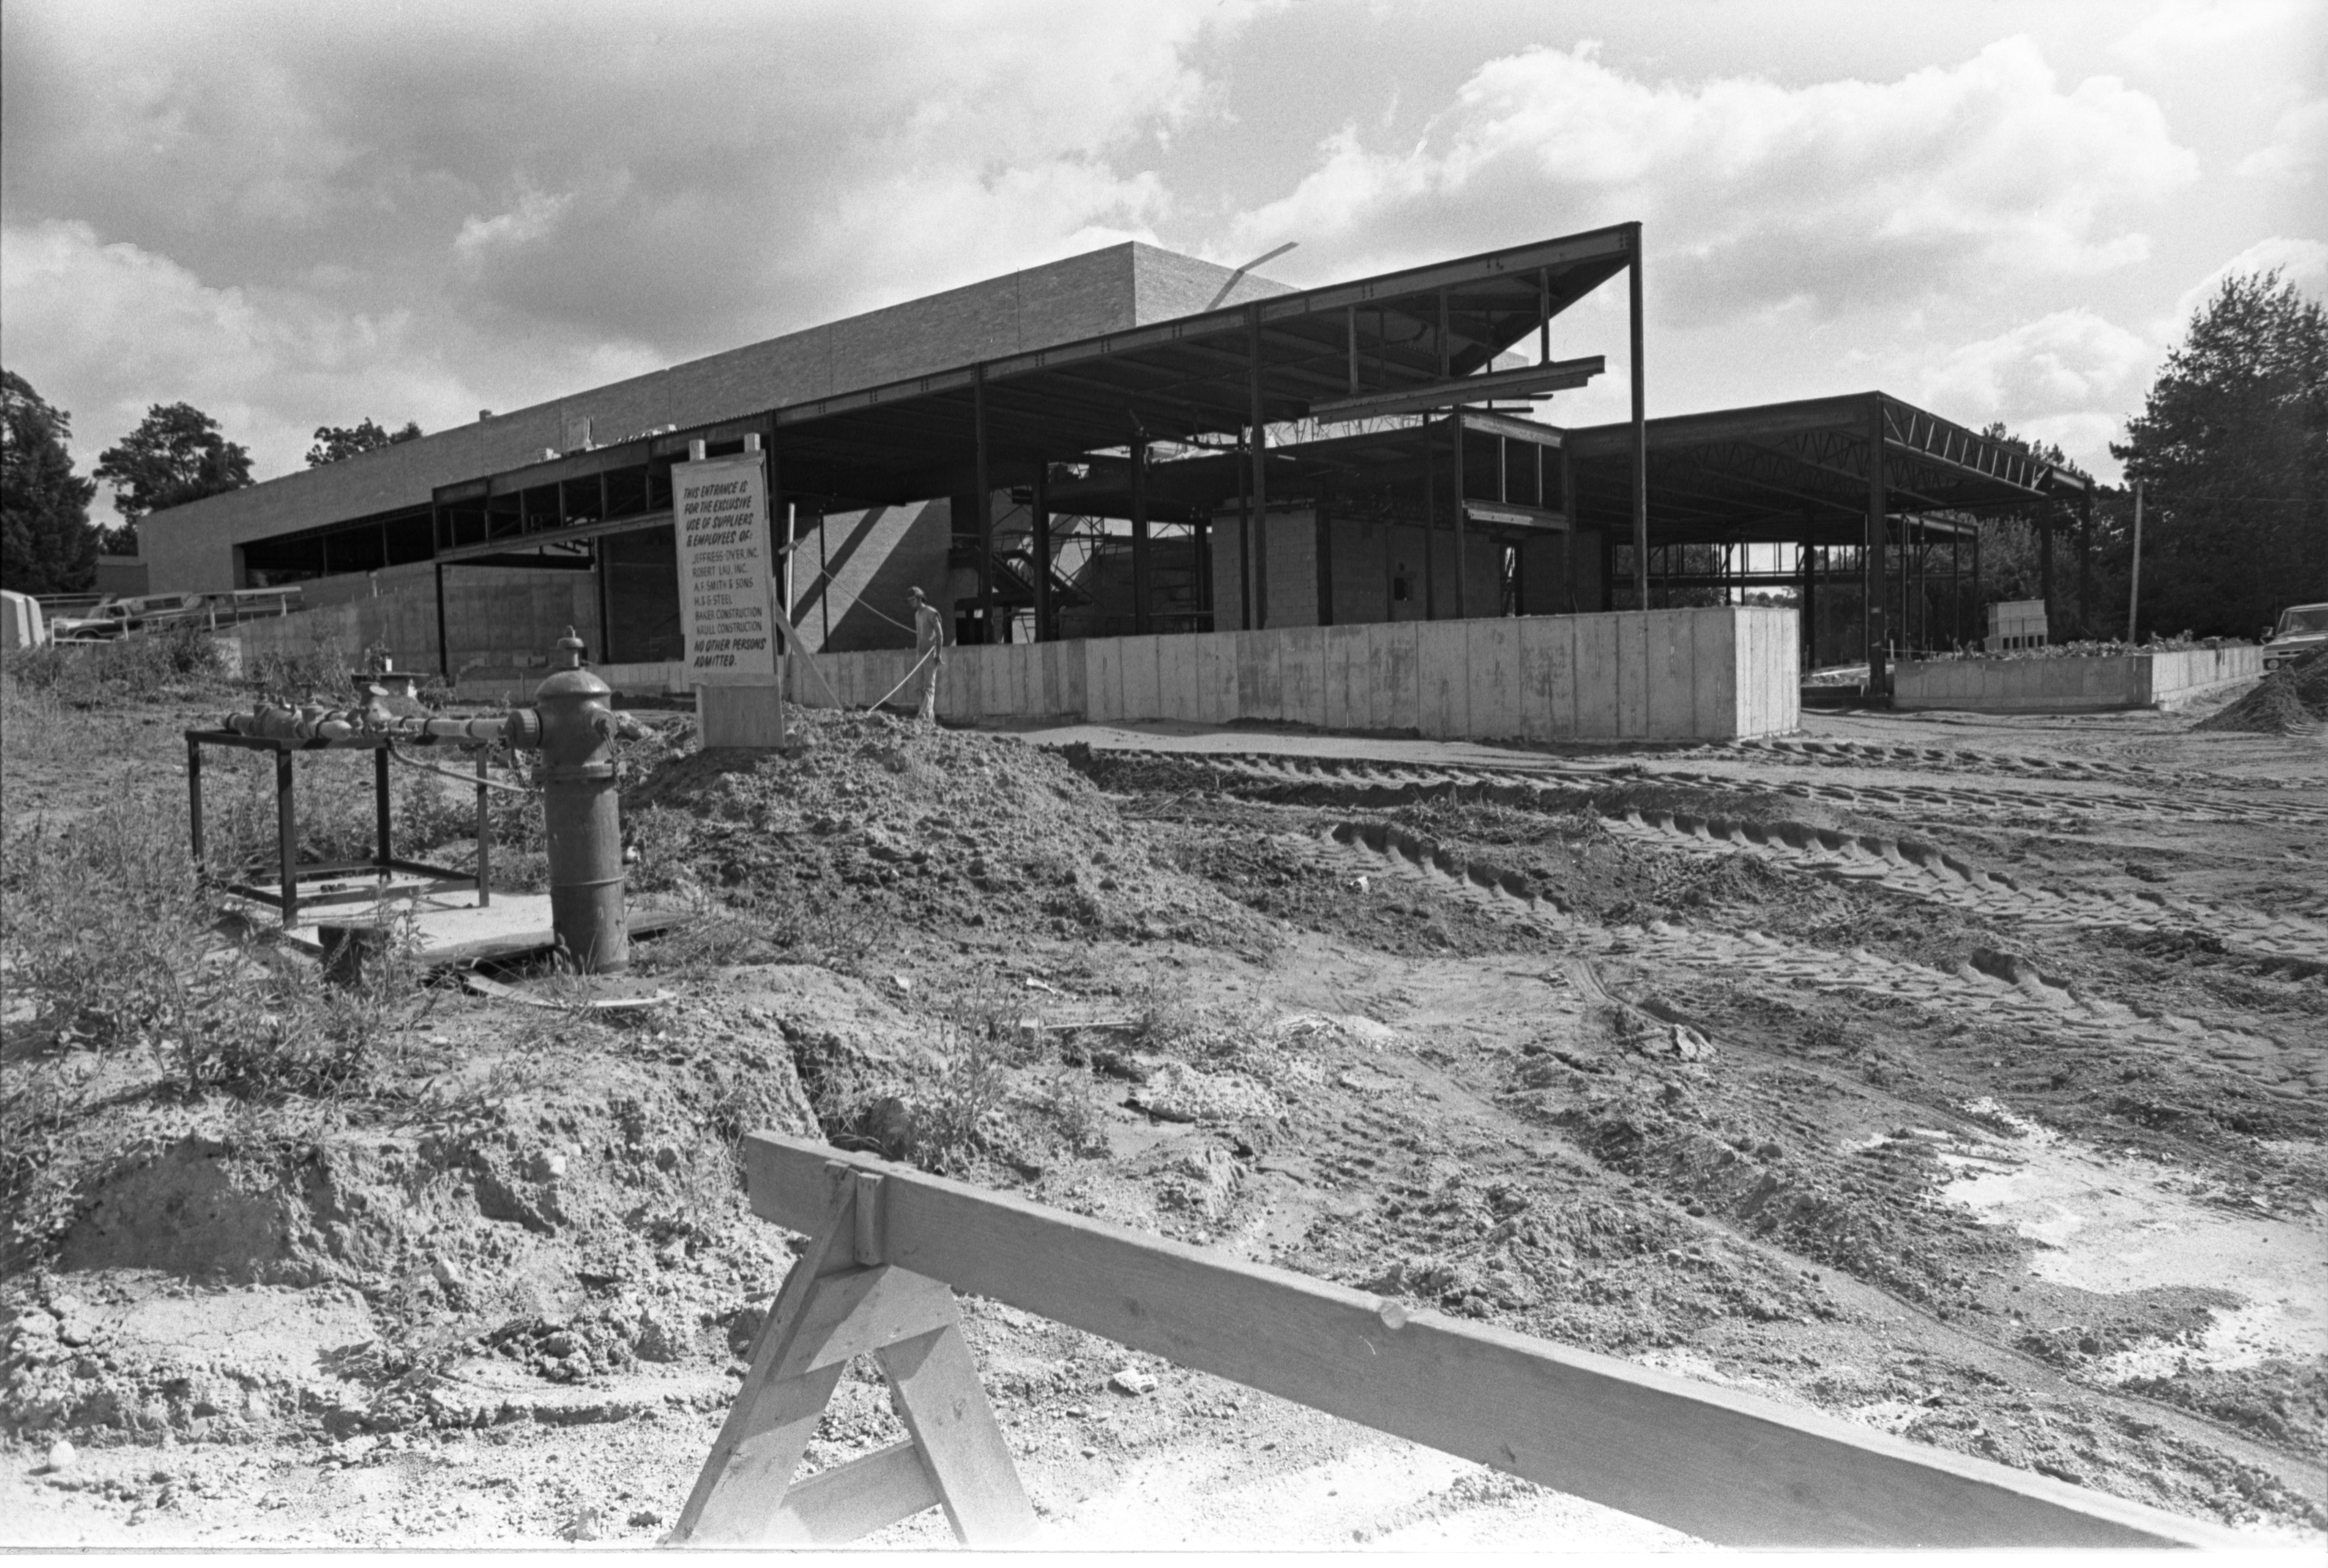 Gerald R. Ford Presidential Library Nears Completion, September 6, 1979 image